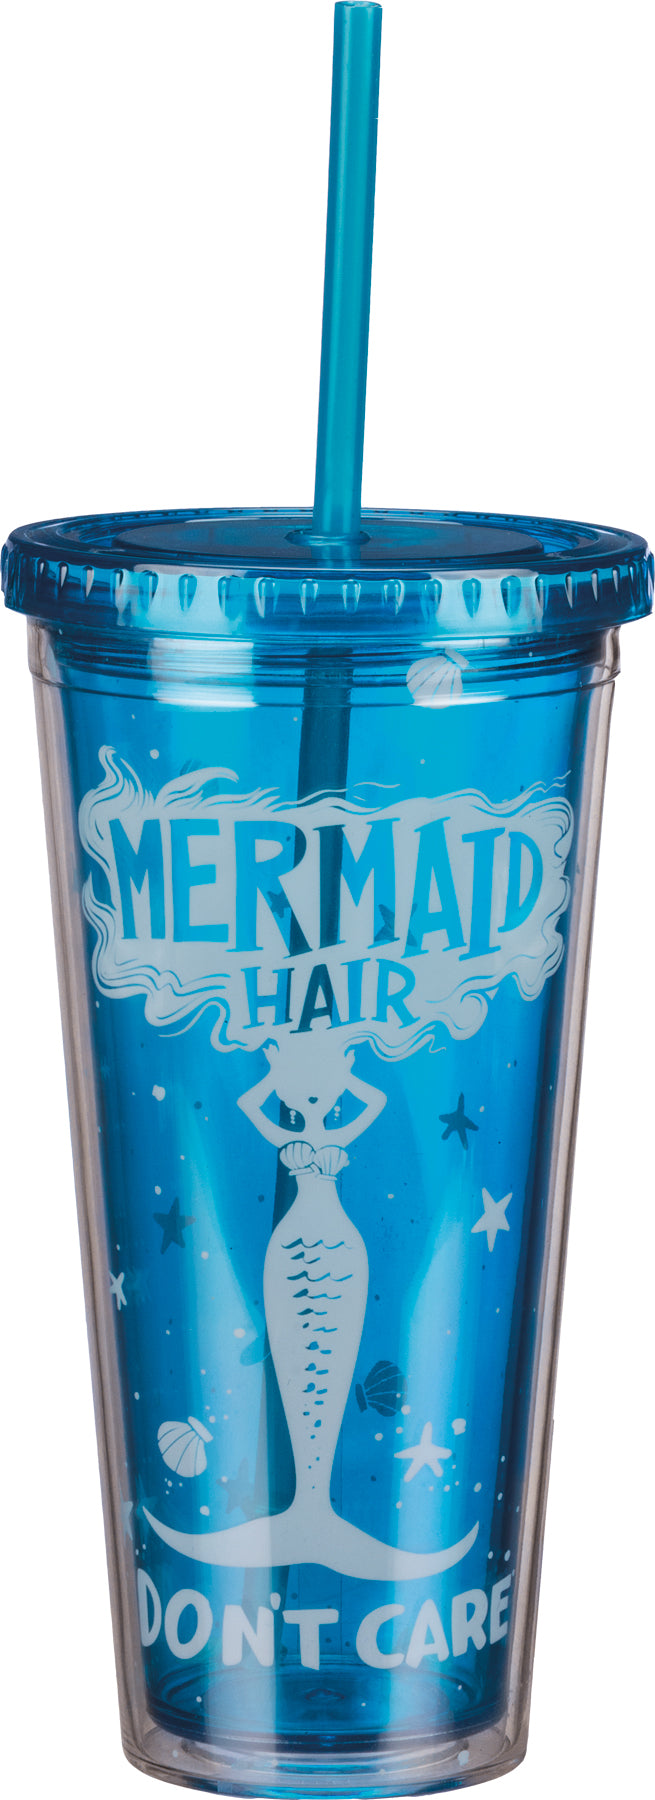 Mermaid Hair Don't Care Tumbler